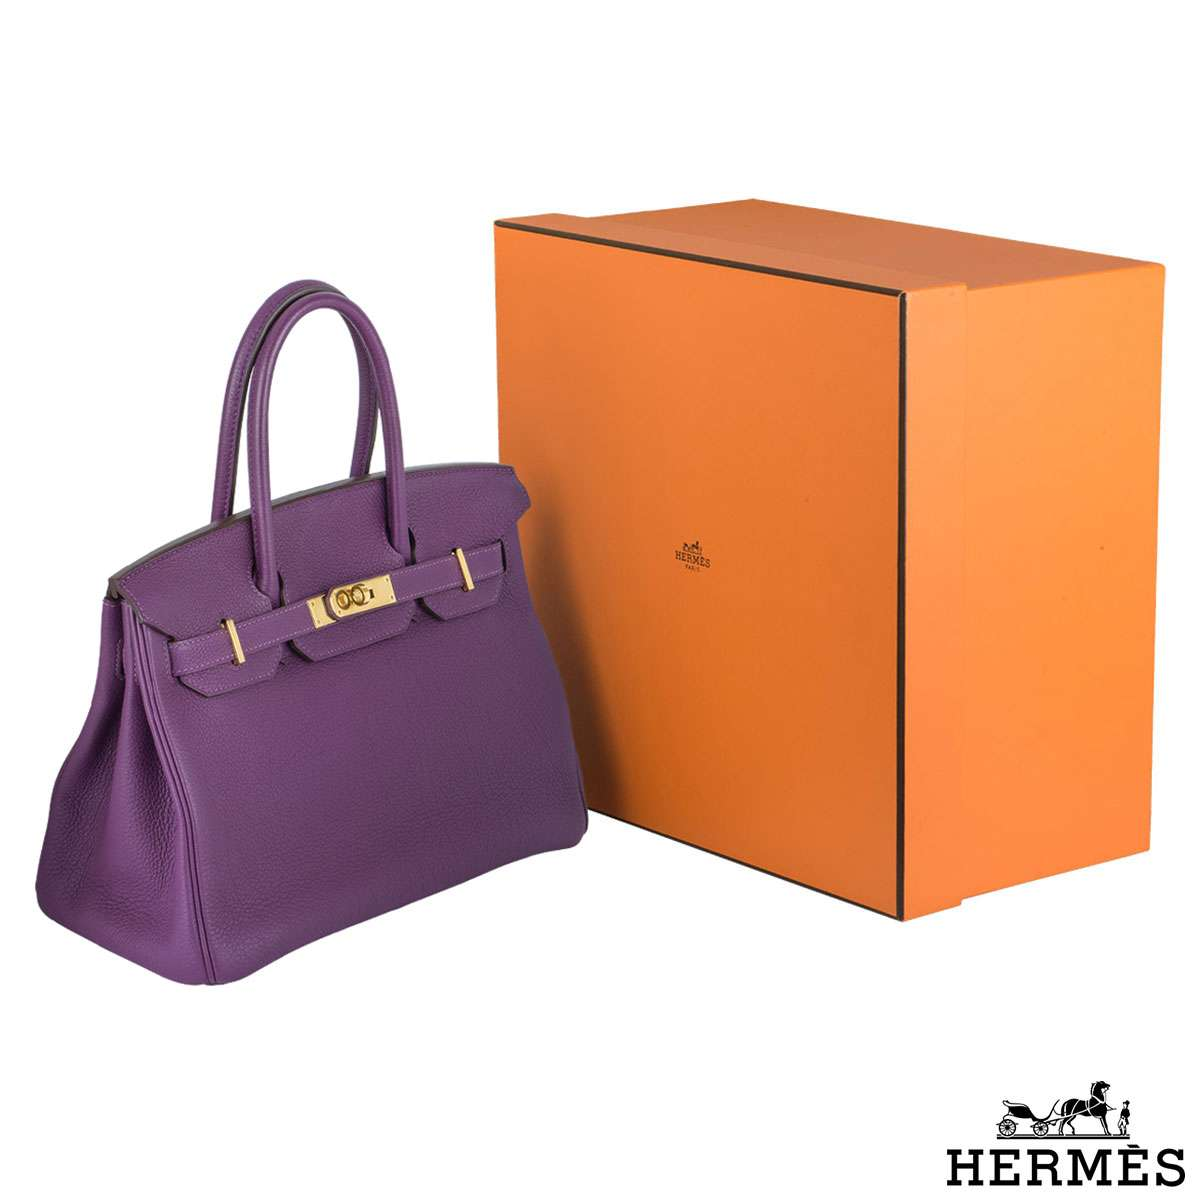 Hermes Birkin 30 cm Fjord leather Anemone Handbag